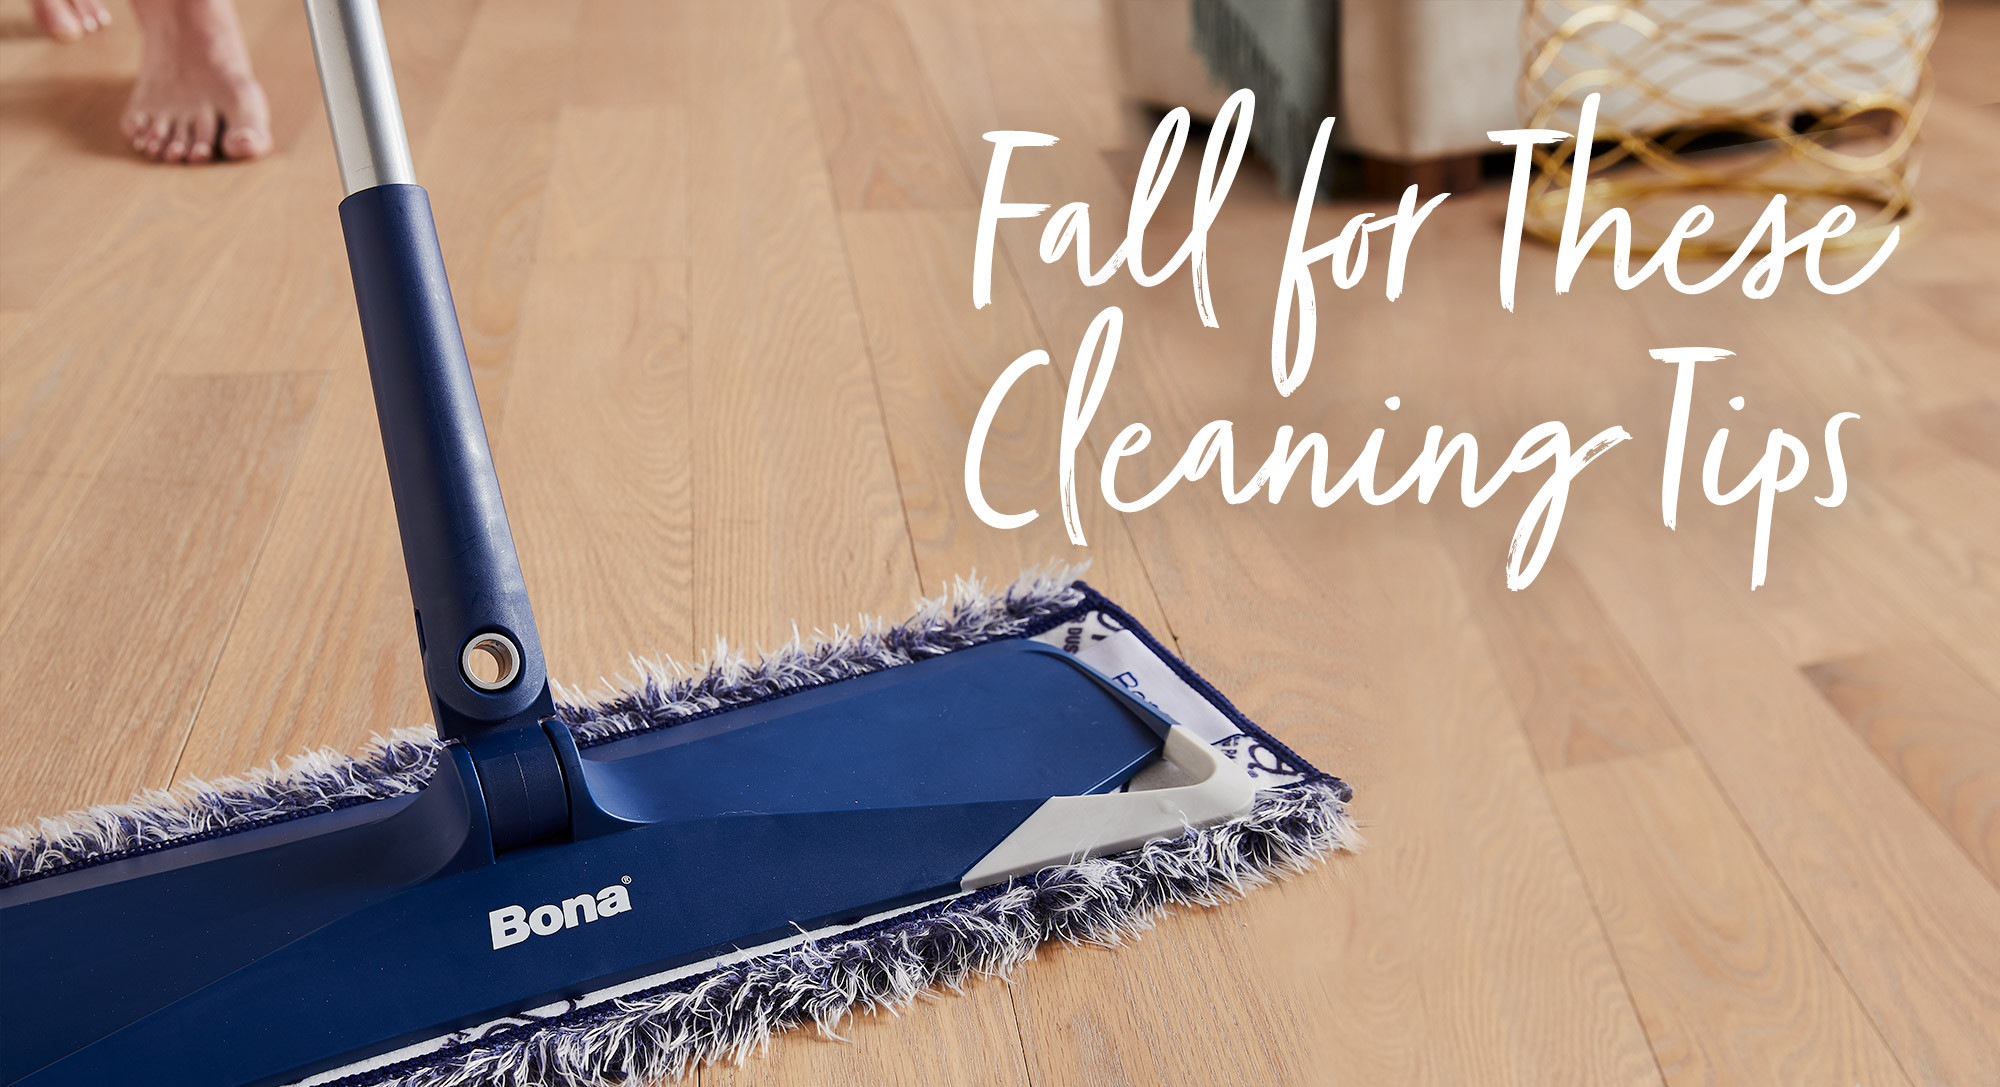 best hardwood floor scrubber of home bona us intended for fall feature2